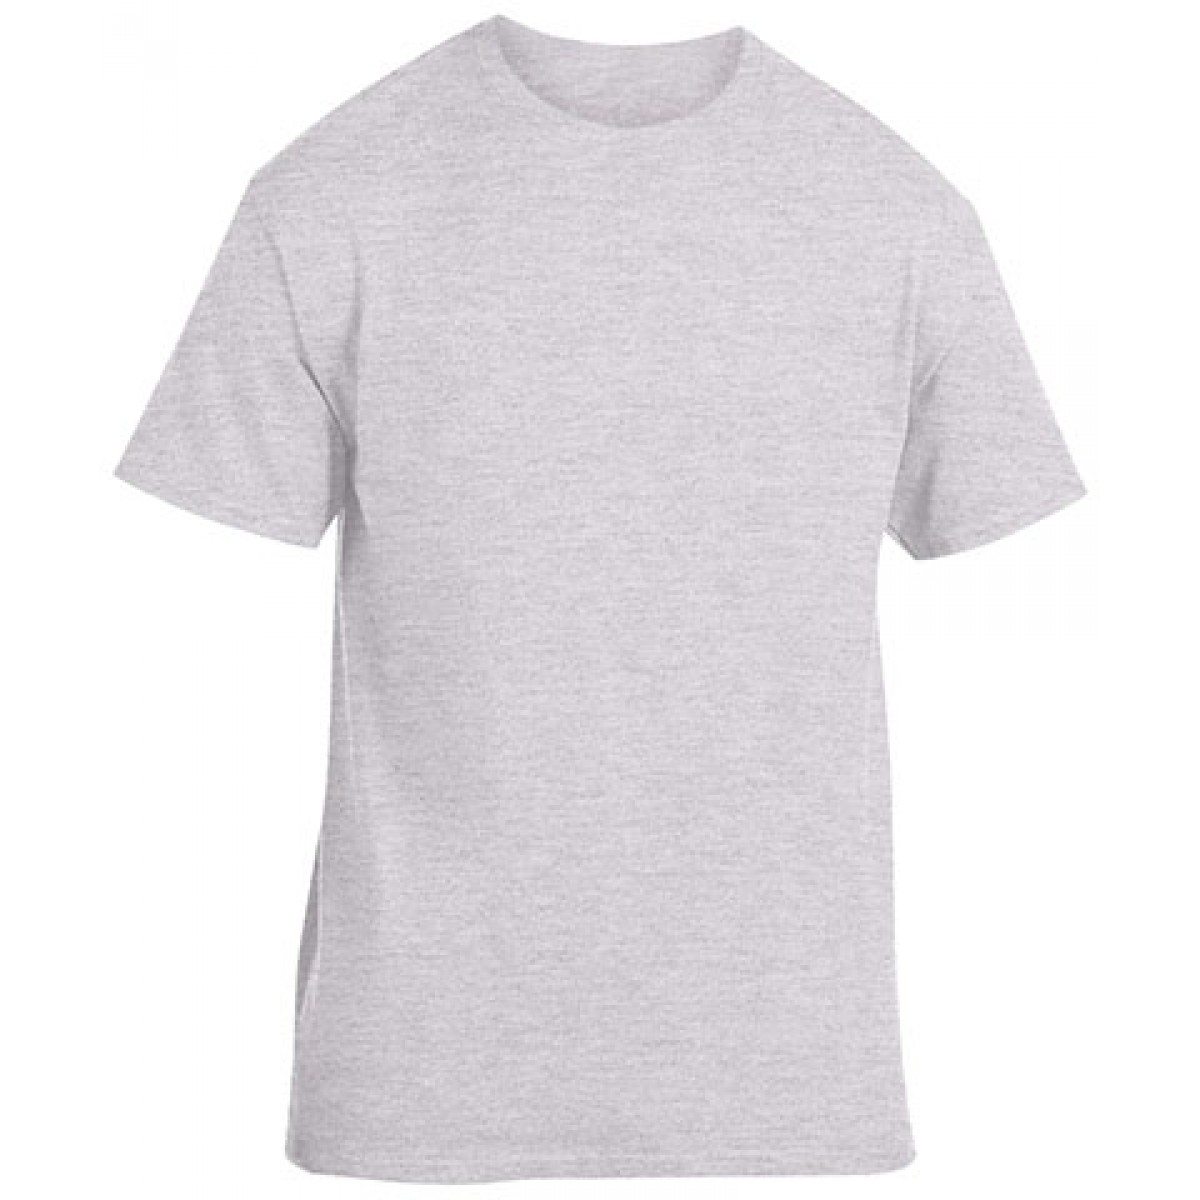 Heavy Cotton Activewear T-Shirt-Sports Grey-3XL